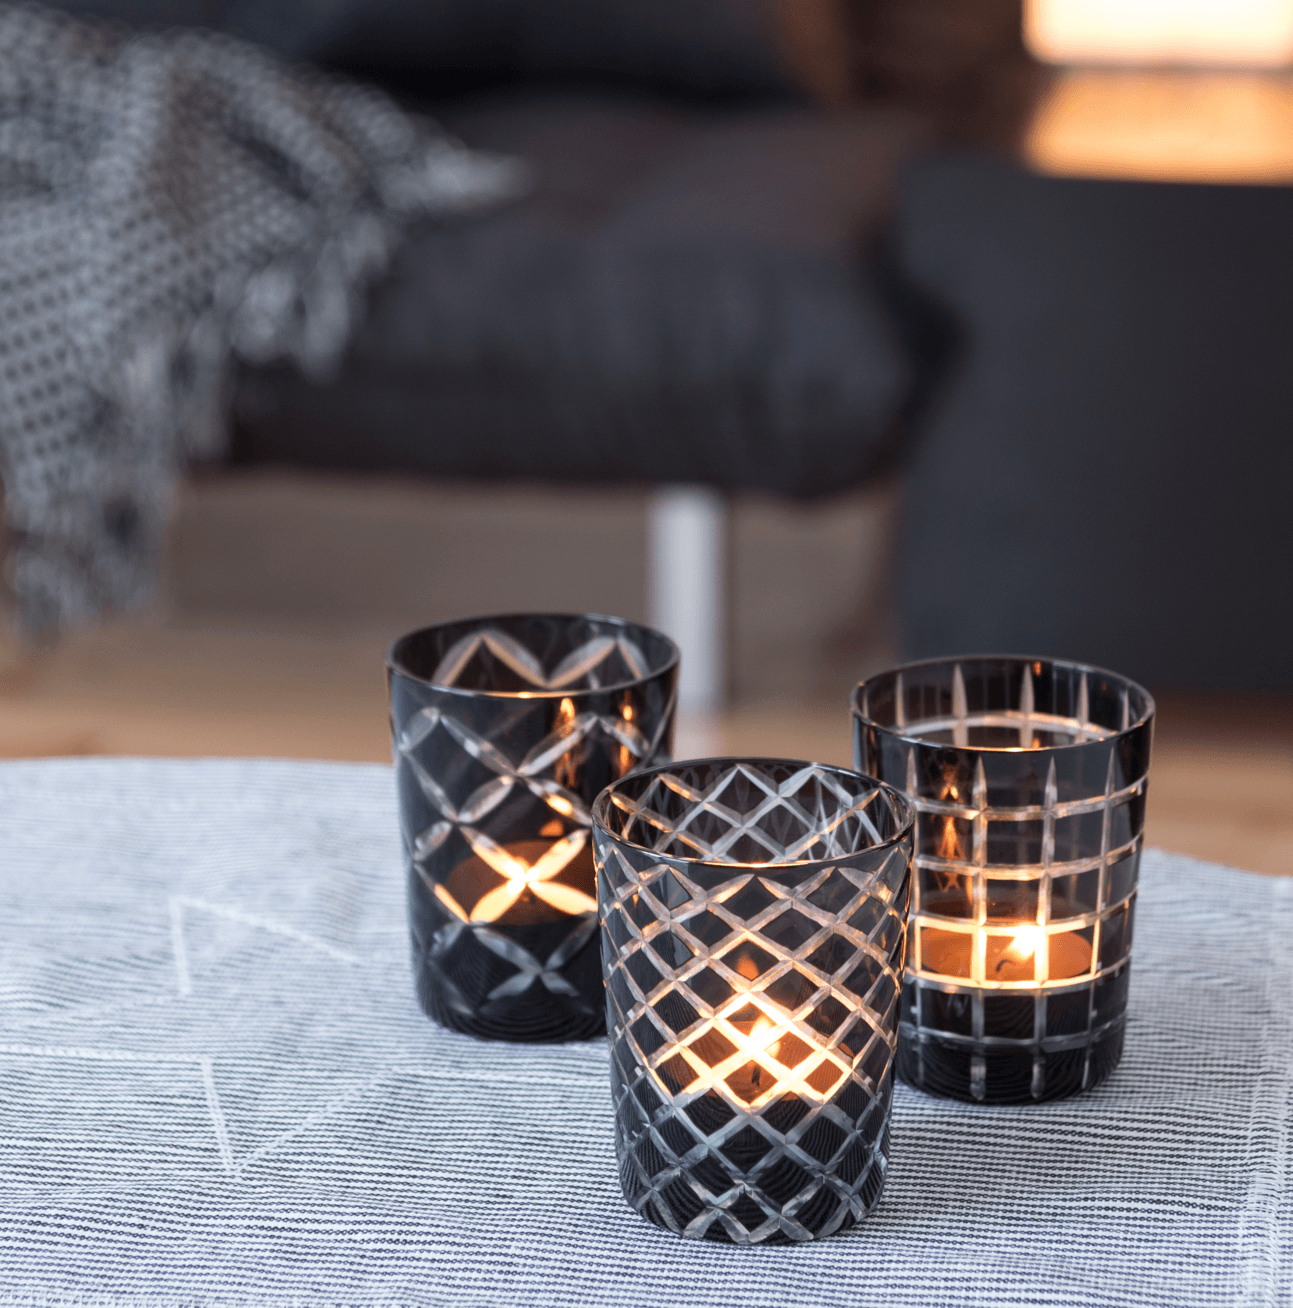 8 Ways to Cozy Up Your Home Candles Image